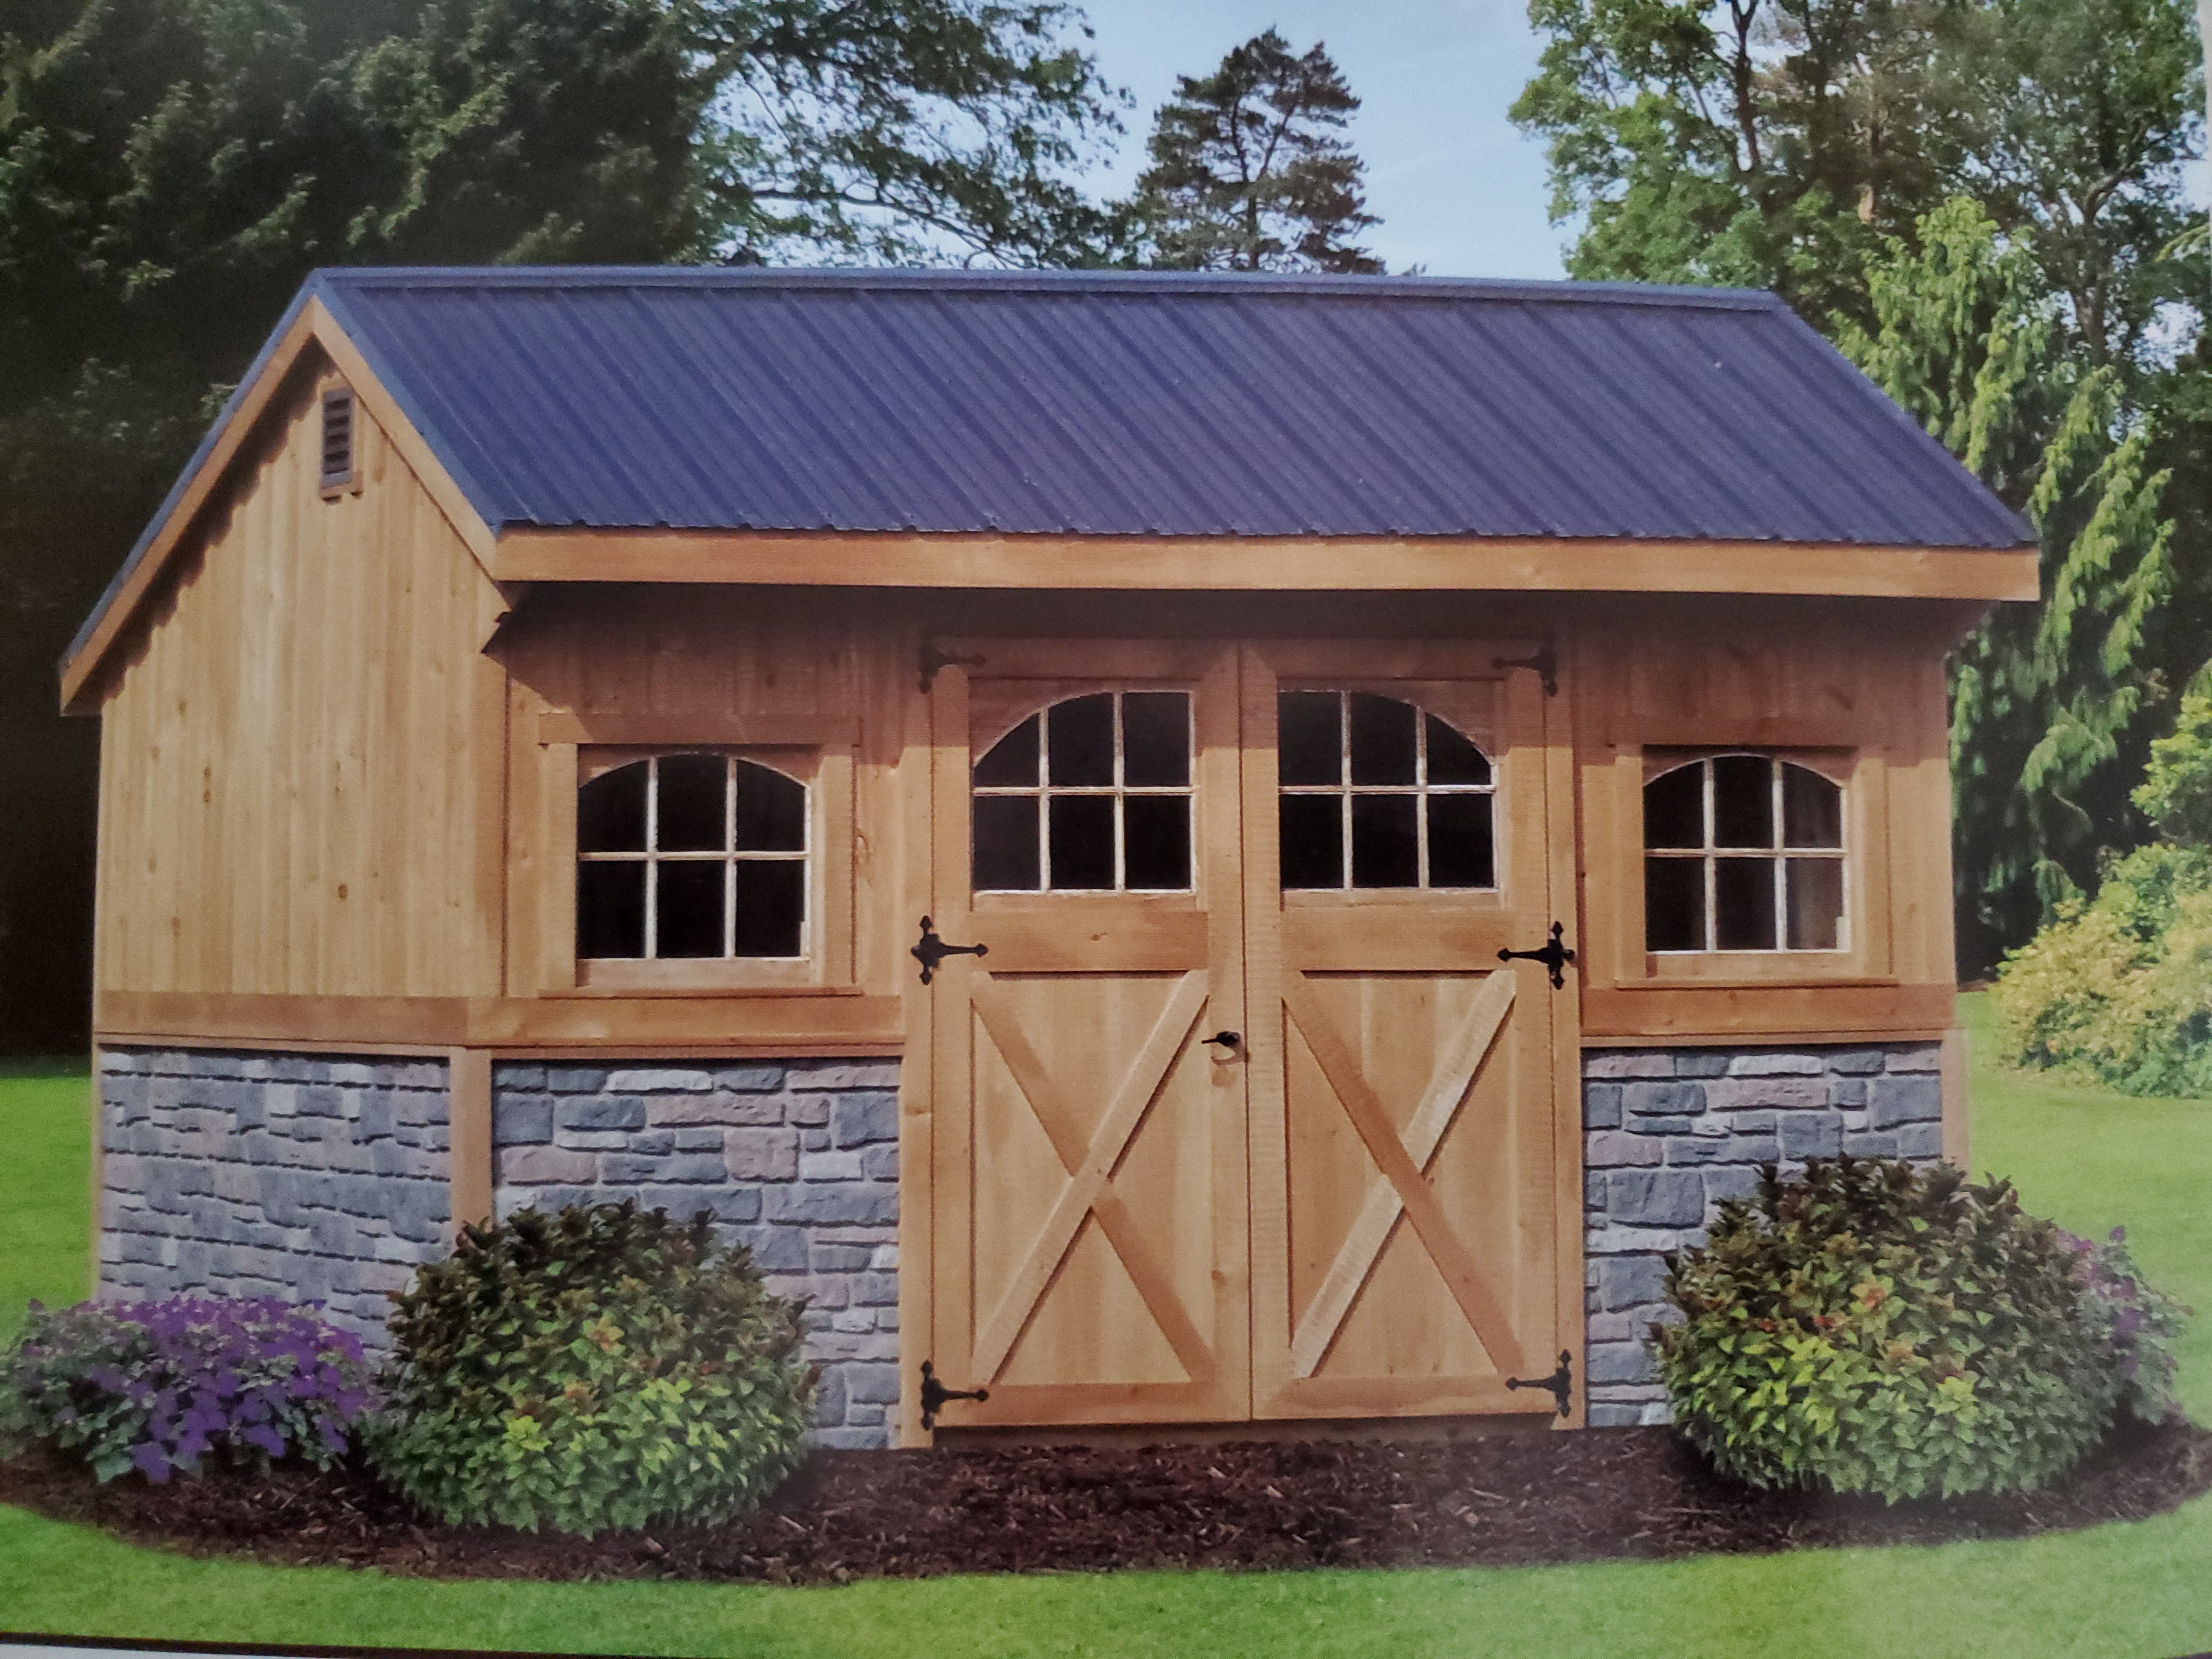 Example of an Amish Quaker shed structure from This n' That